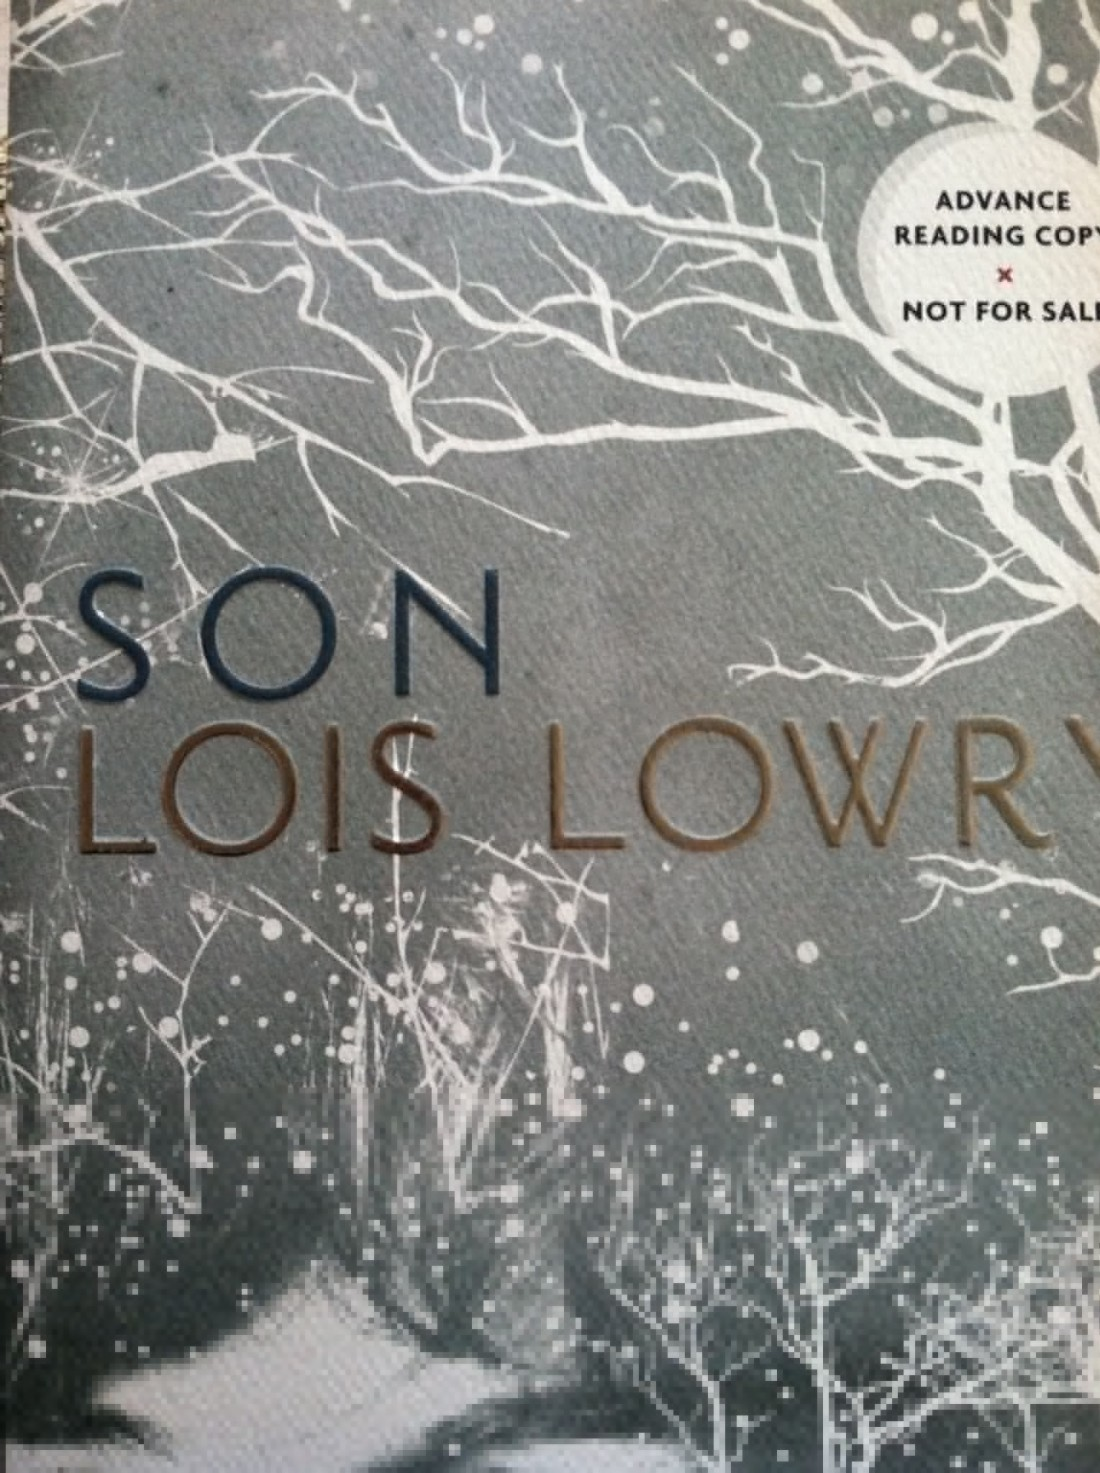 government suppression and control in the giver by lois lowry Many themes in the giver demonstrate lowry's concerns about society and  humanity  the giver lois lowry  but the utopian ideals went awry, and  people became controlled and manipulated through social conditioning and  language.